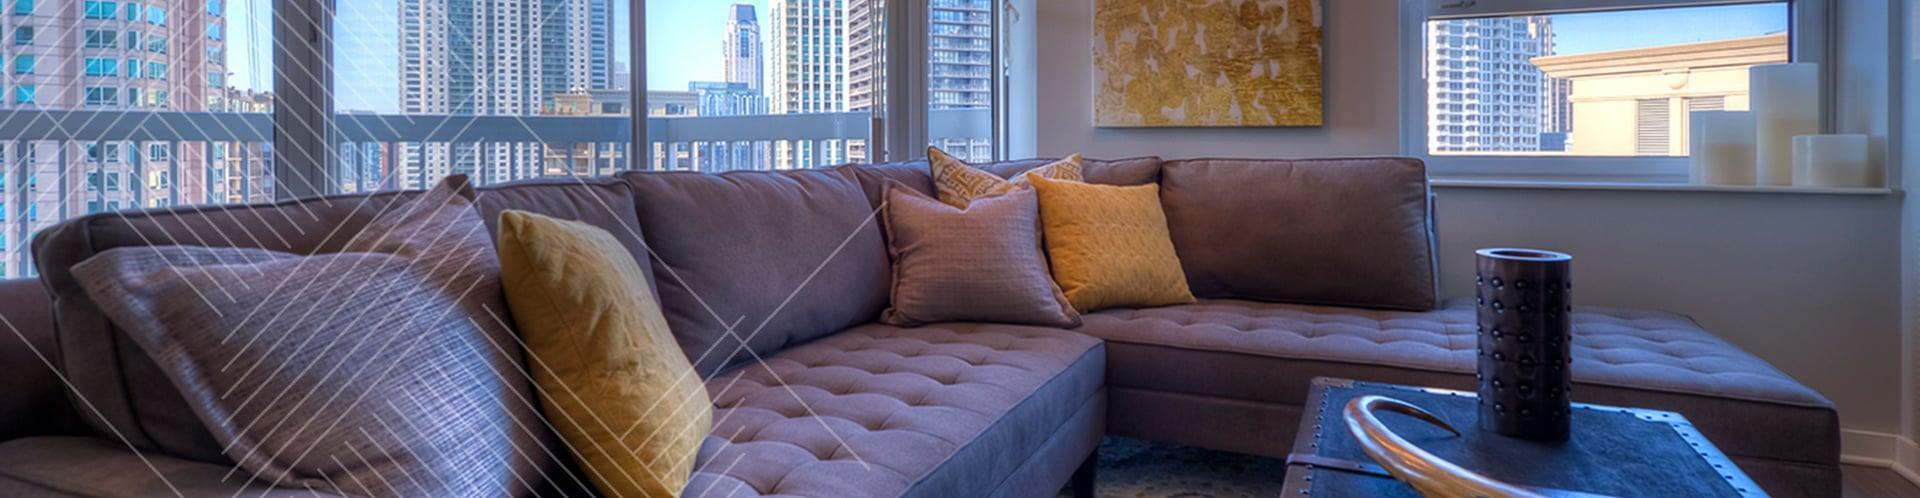 540 N State St #003704, Chicago, IL - $3,722 USD/ month